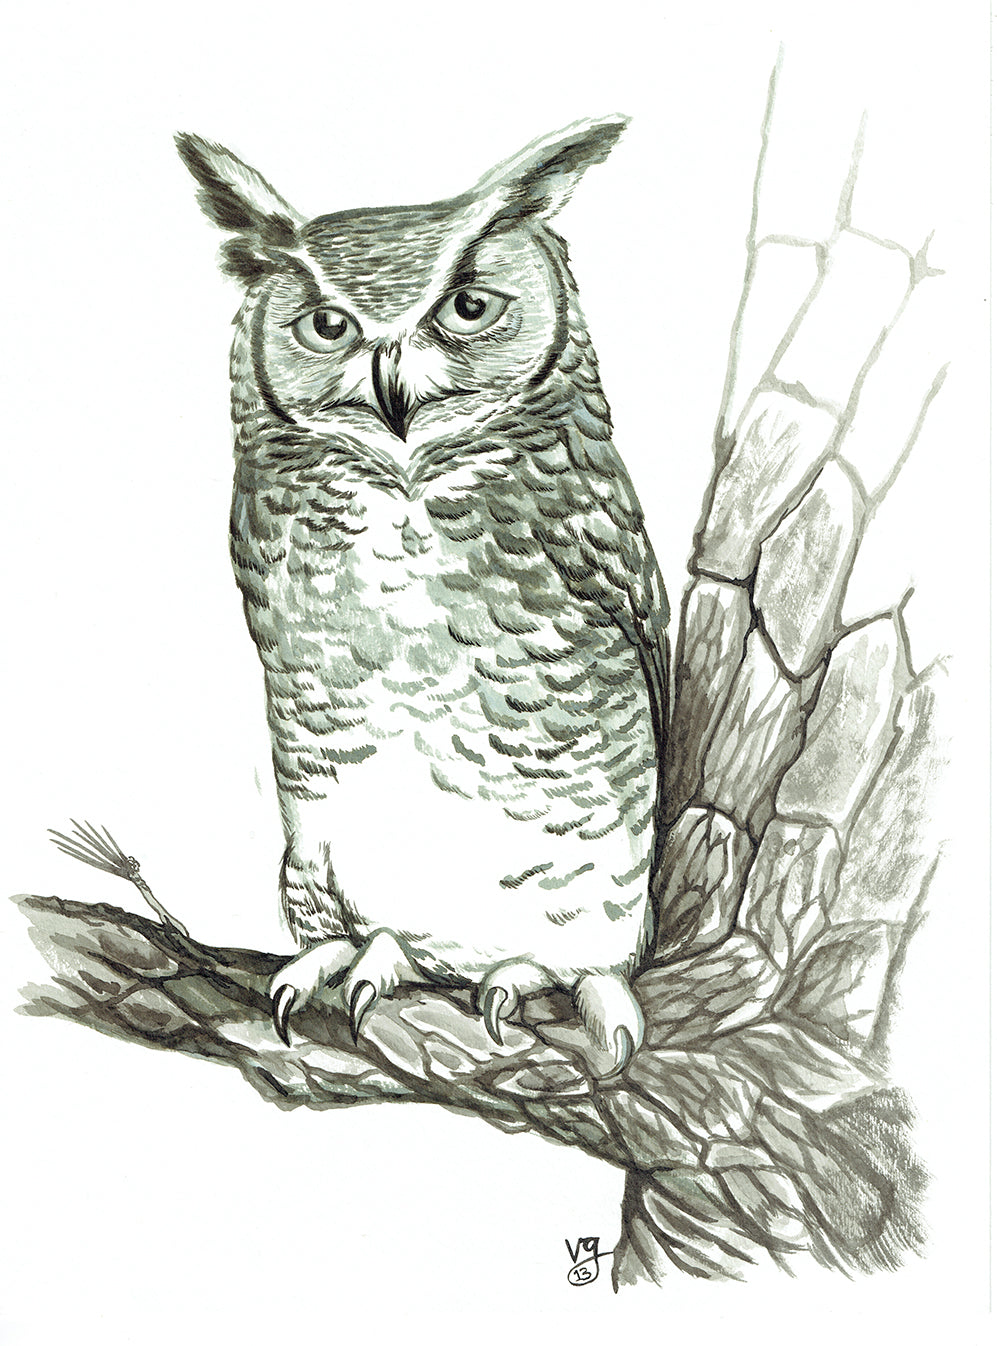 2013 Superb Owl— Great Horned Owl Original Ink Wash Painting